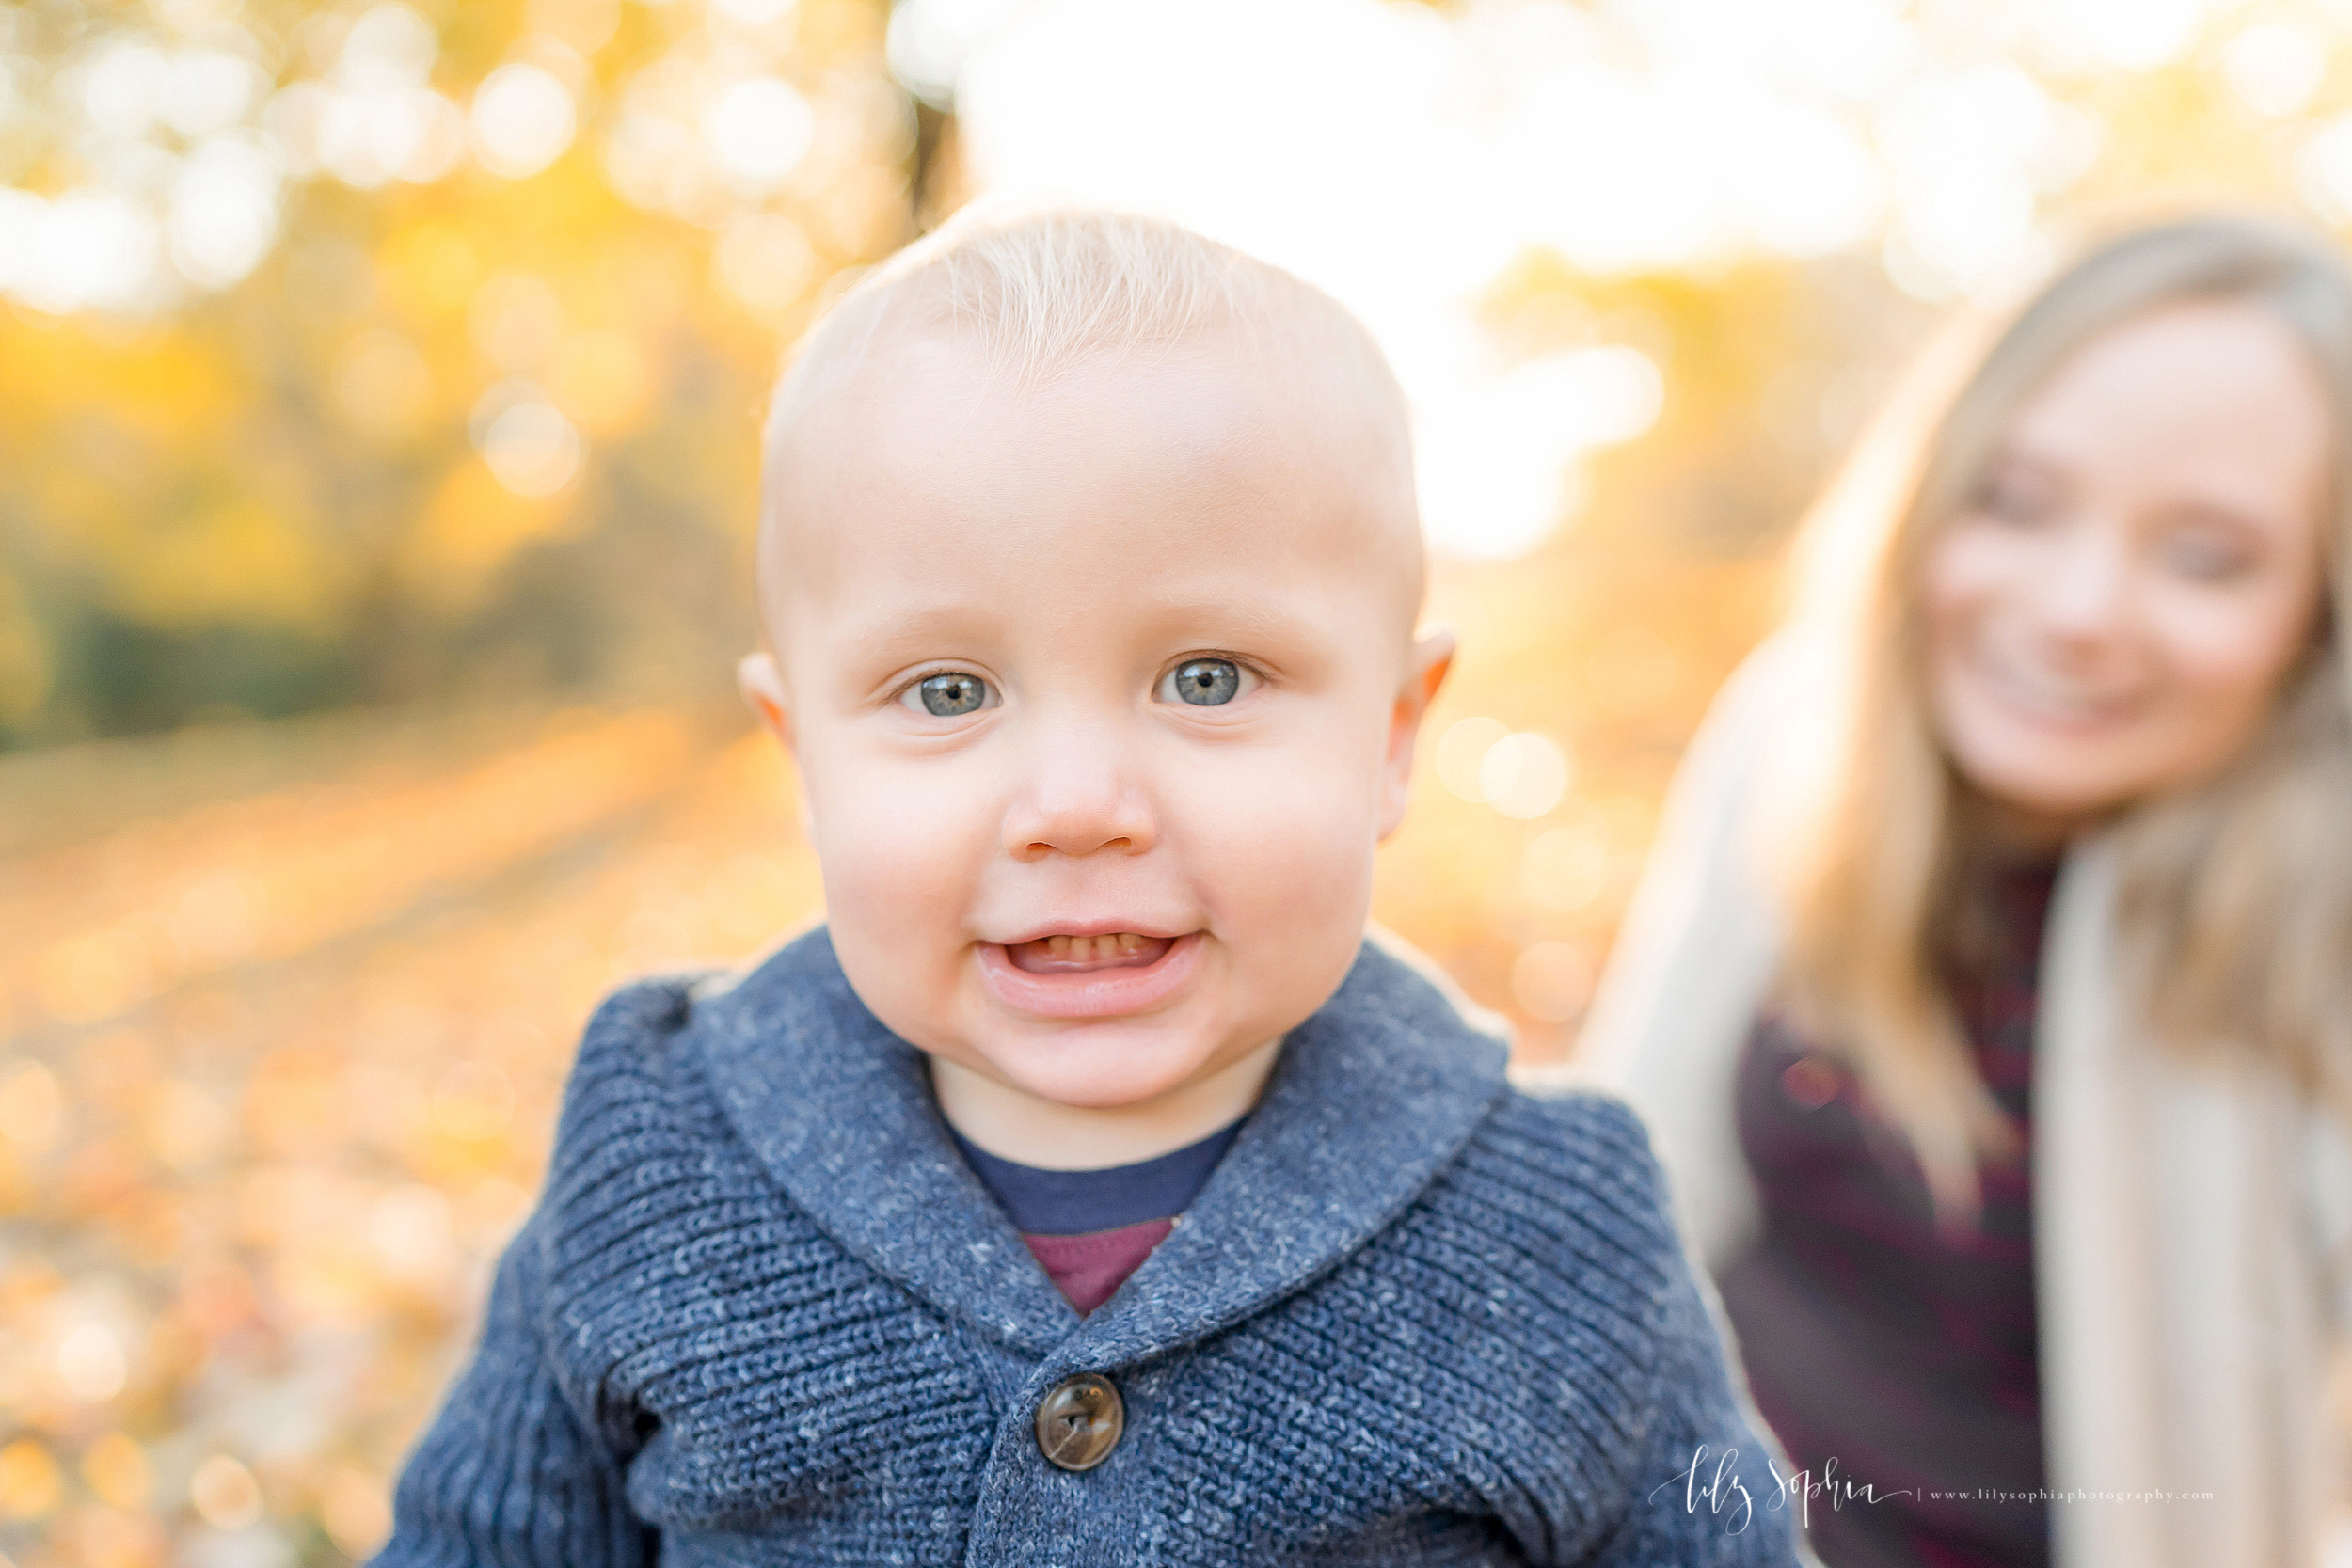 atlanta-midtown-brookhaven-decatur-lily-sophia-photography-photographer-portraits-grant-park-family-sunset-fall-outdoor-session-brothers-toddler-baby_0143.jpg